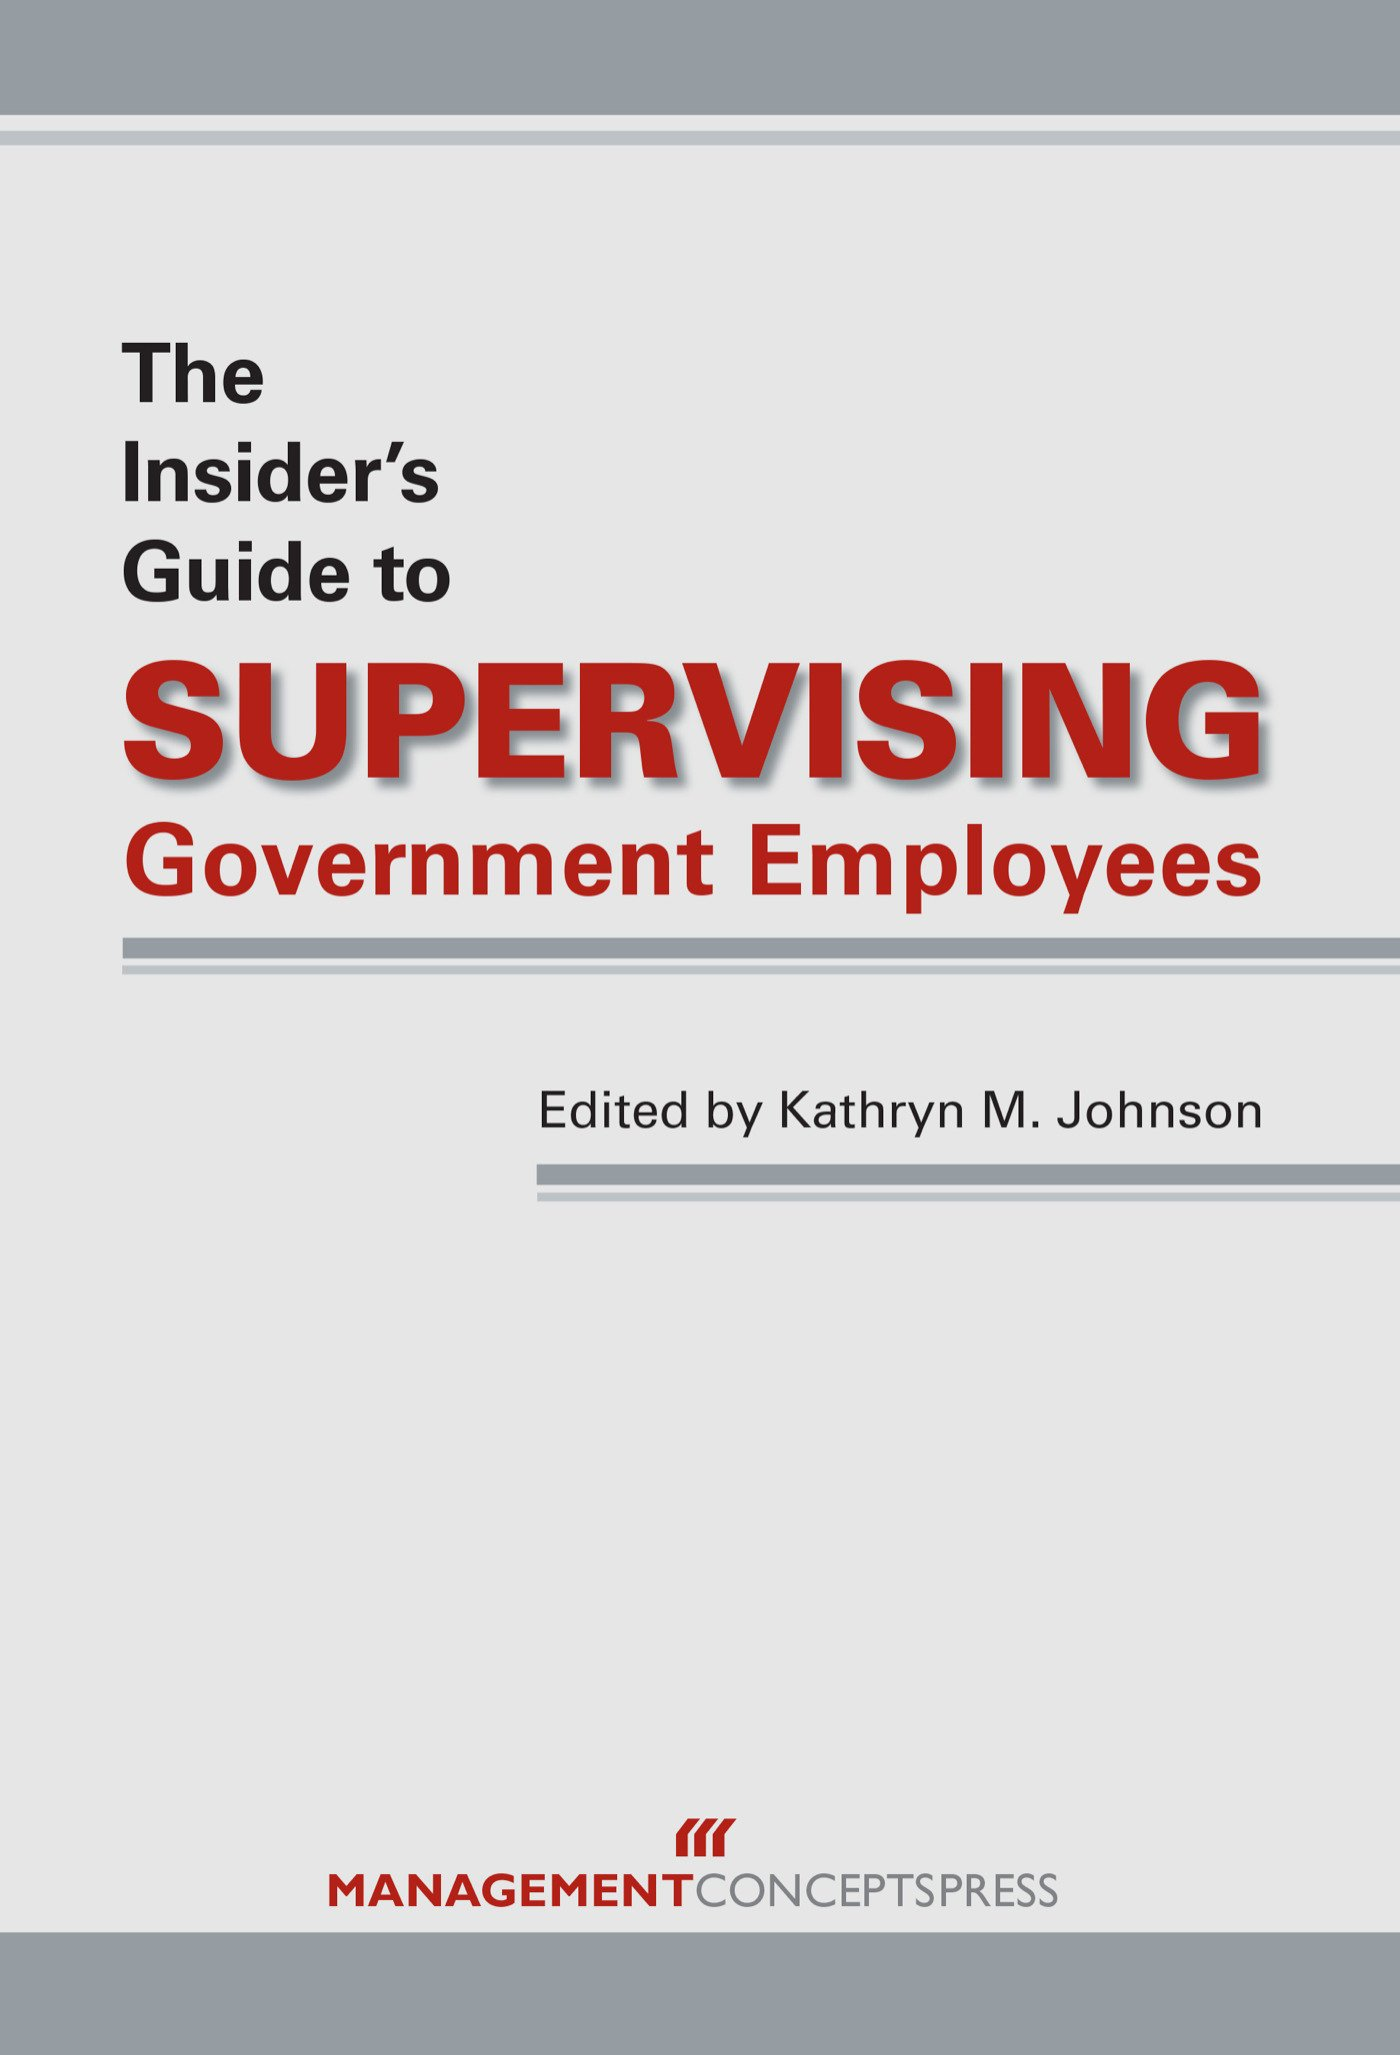 Download The Insider's Guide to Supervising Government Employees PDF